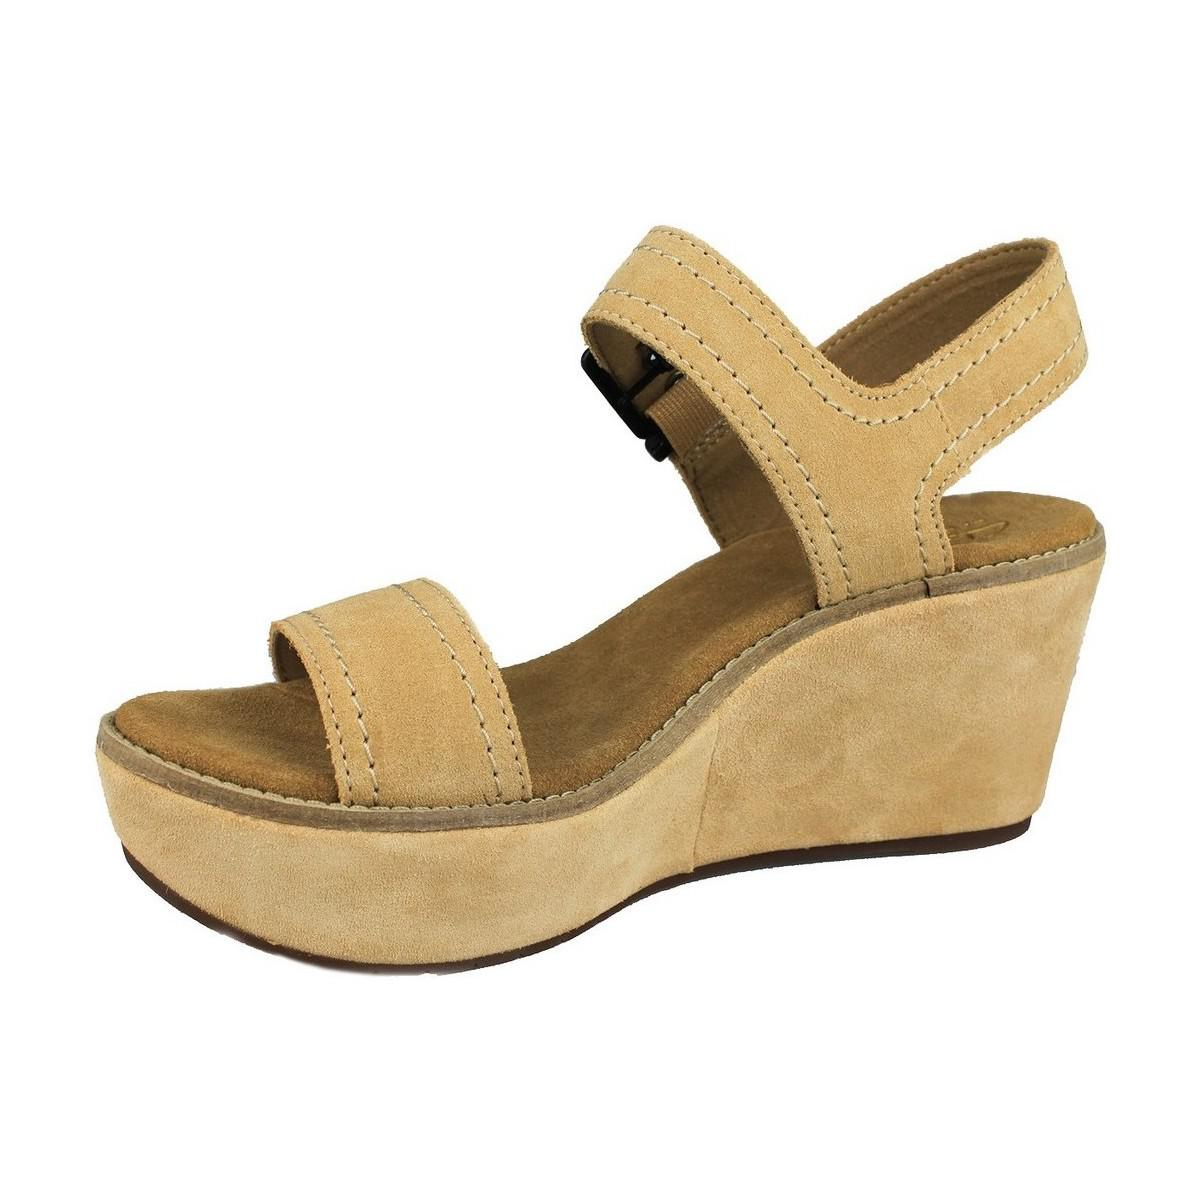 f22199098b59 Clarks - Aisley Orchid Women s Sandals In Brown - Lyst. View fullscreen